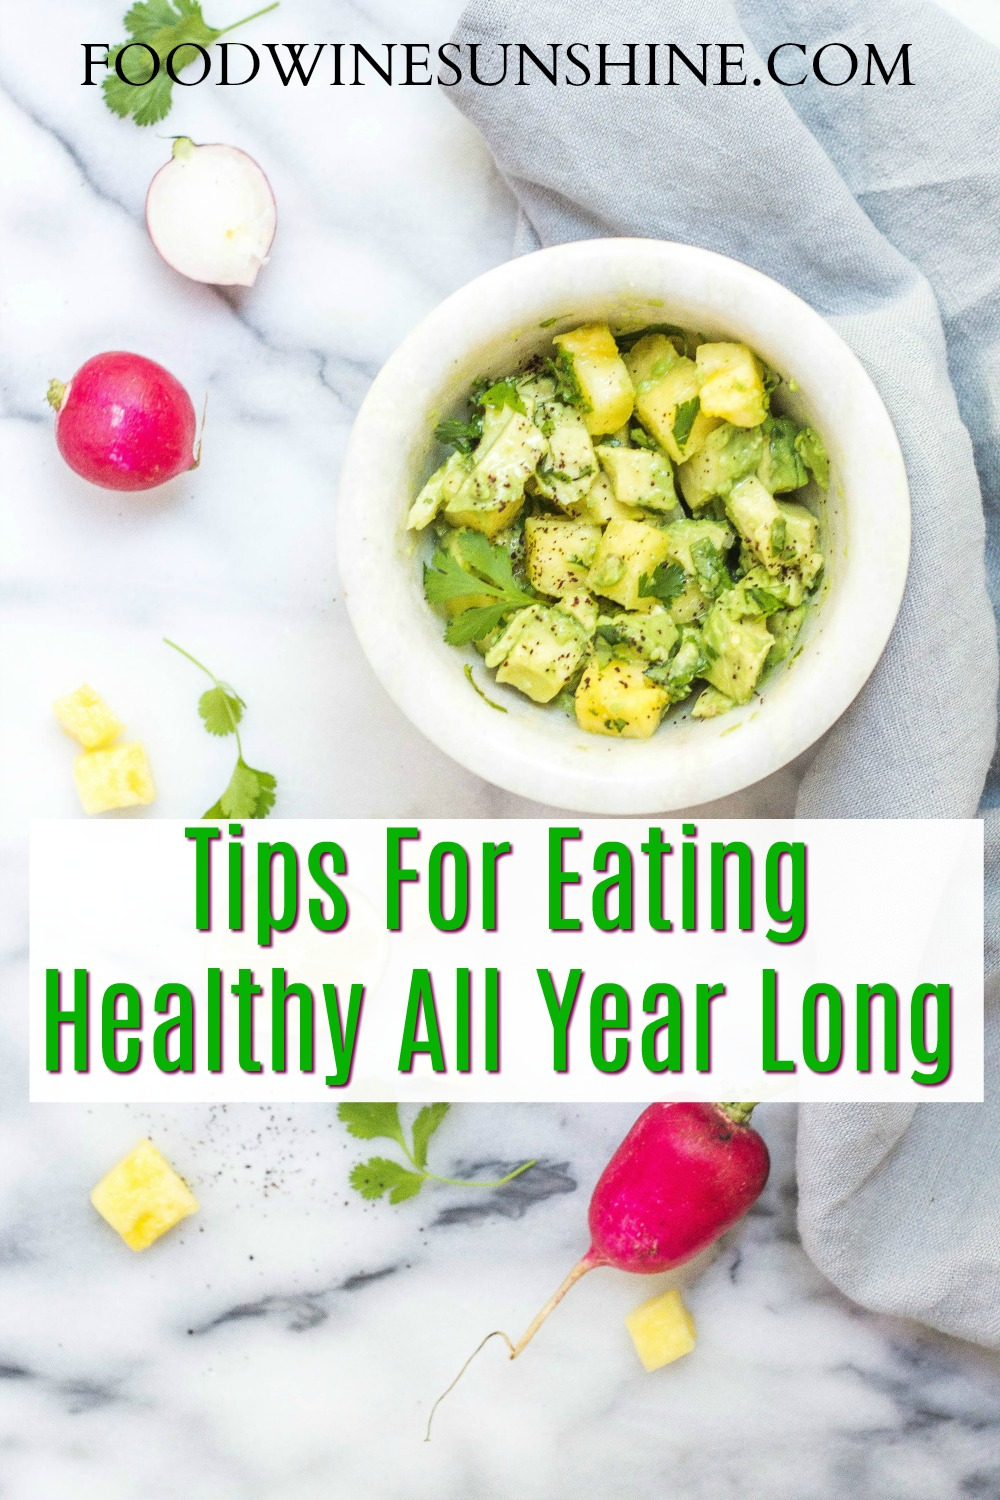 Tips To Eating Healthy